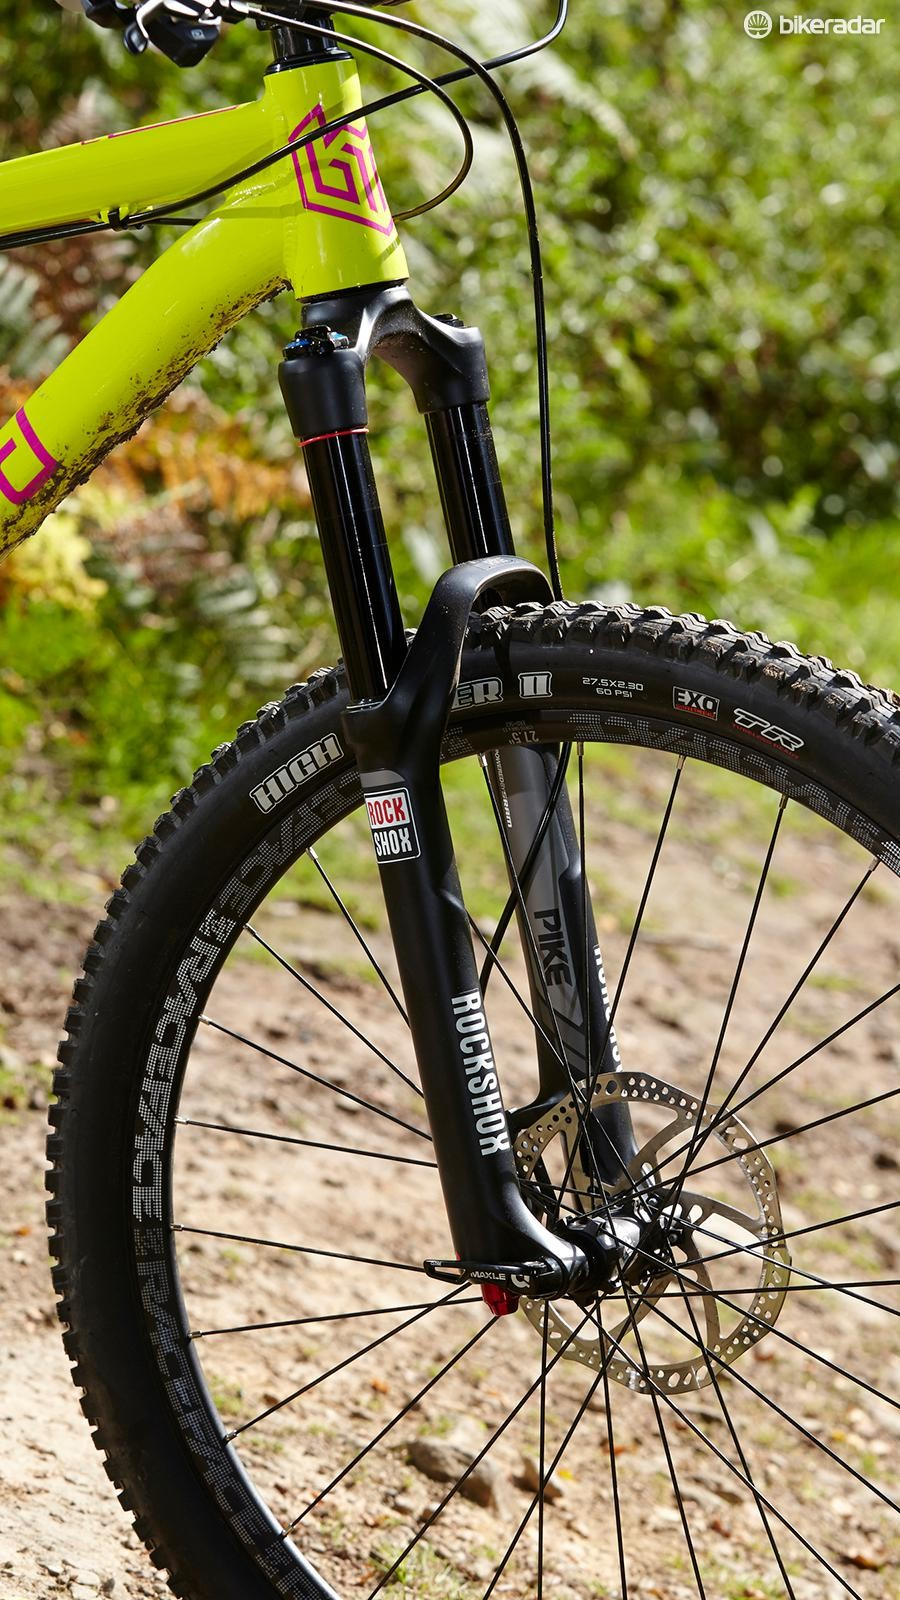 We souped up our machine's business end with a Pike RCT3 fork